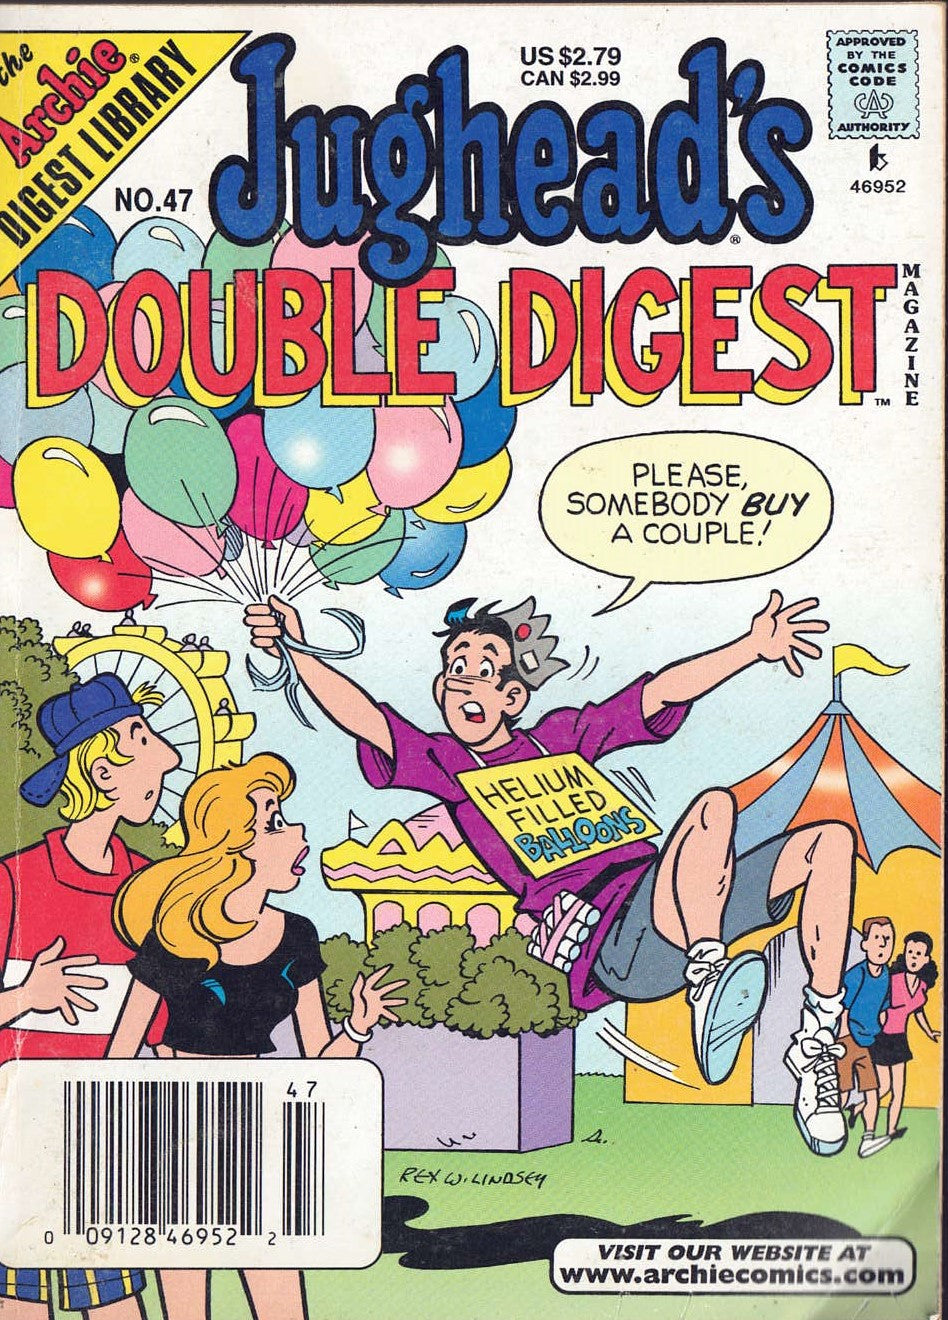 Jughead Double Digest # 47 - Busy Bee Emporium